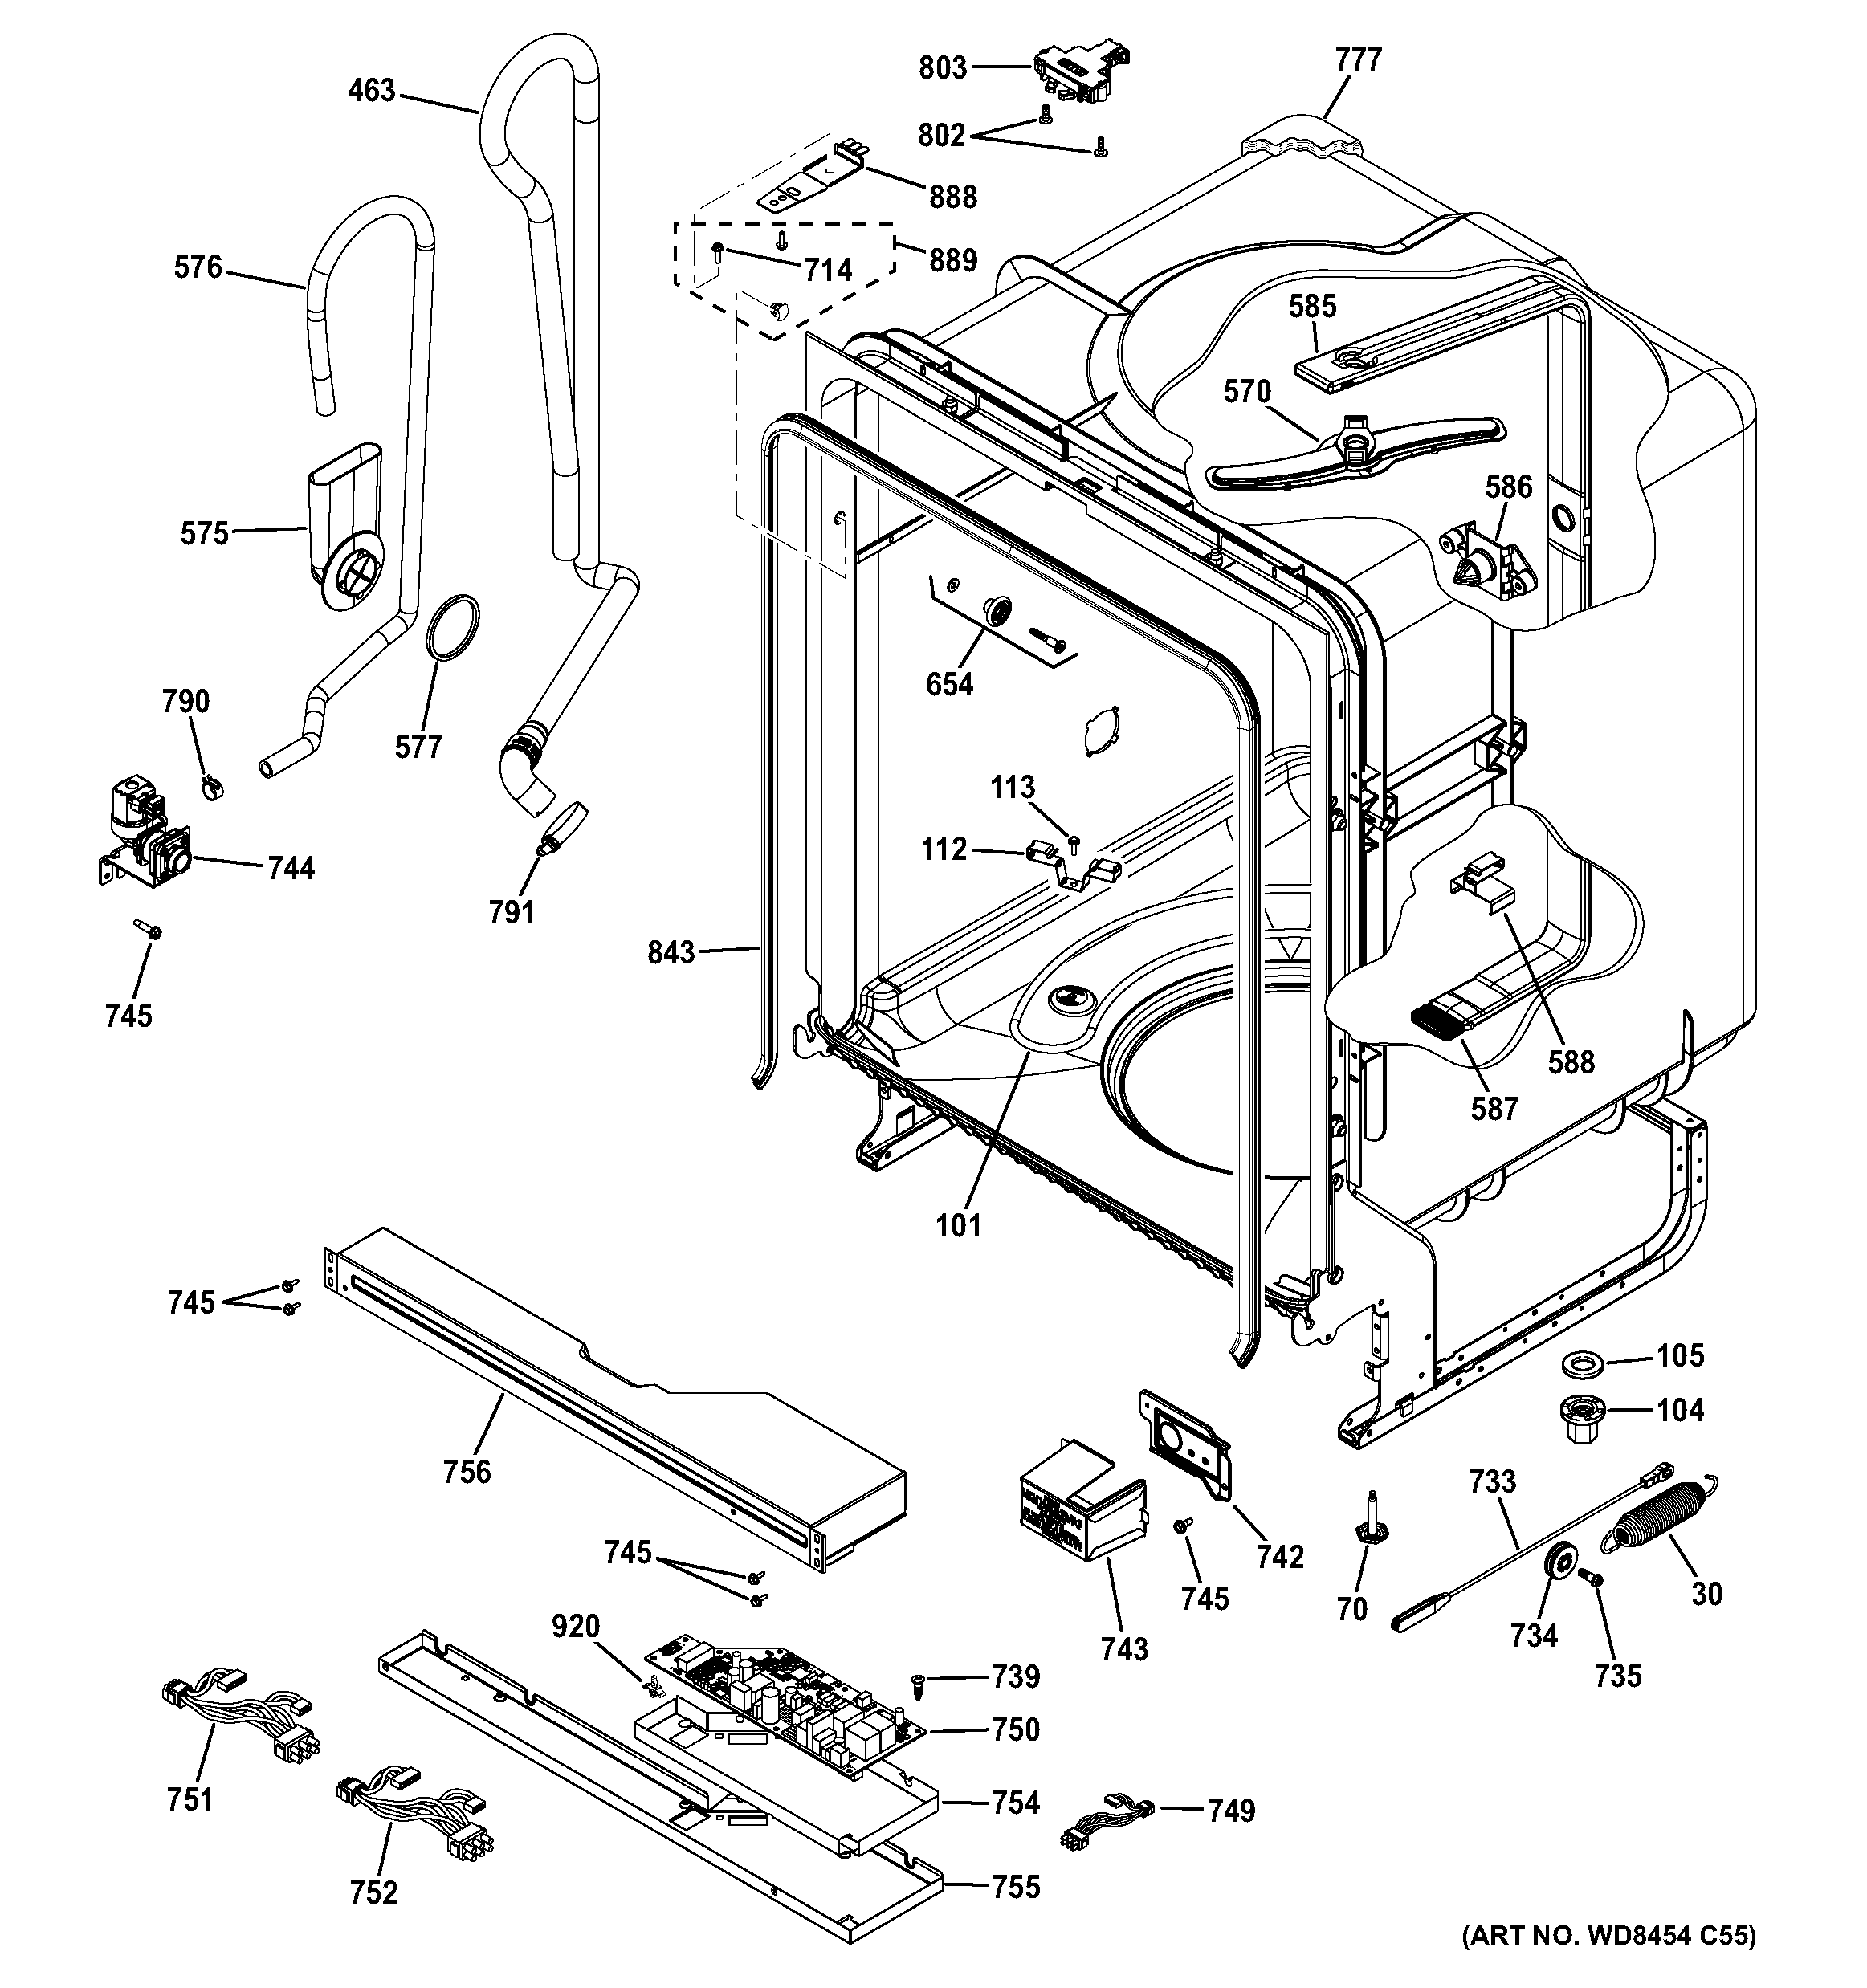 BODY PARTS Diagram & Parts List for Model adt521pgf2ws GE